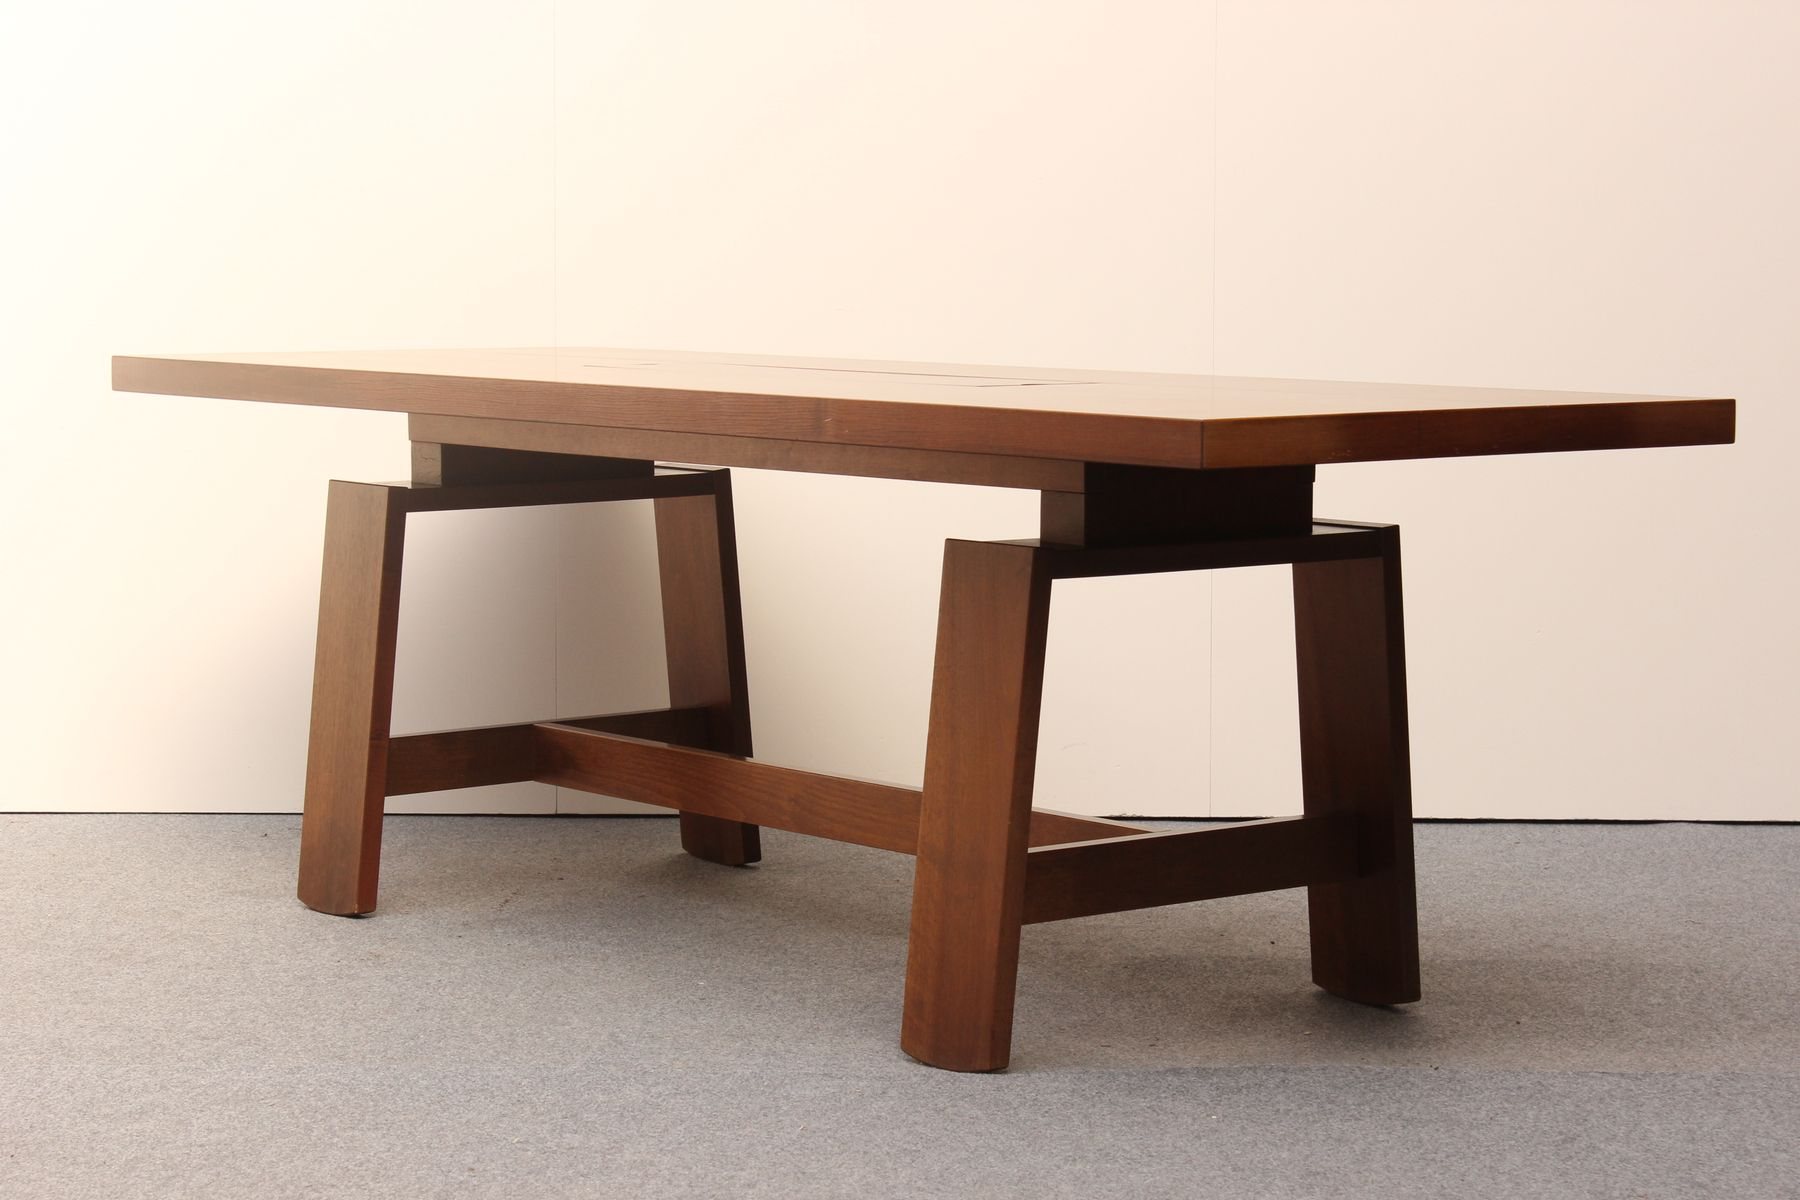 Table mod le 611 en bois et en c ramique par silvio - Table ceramique italie ...